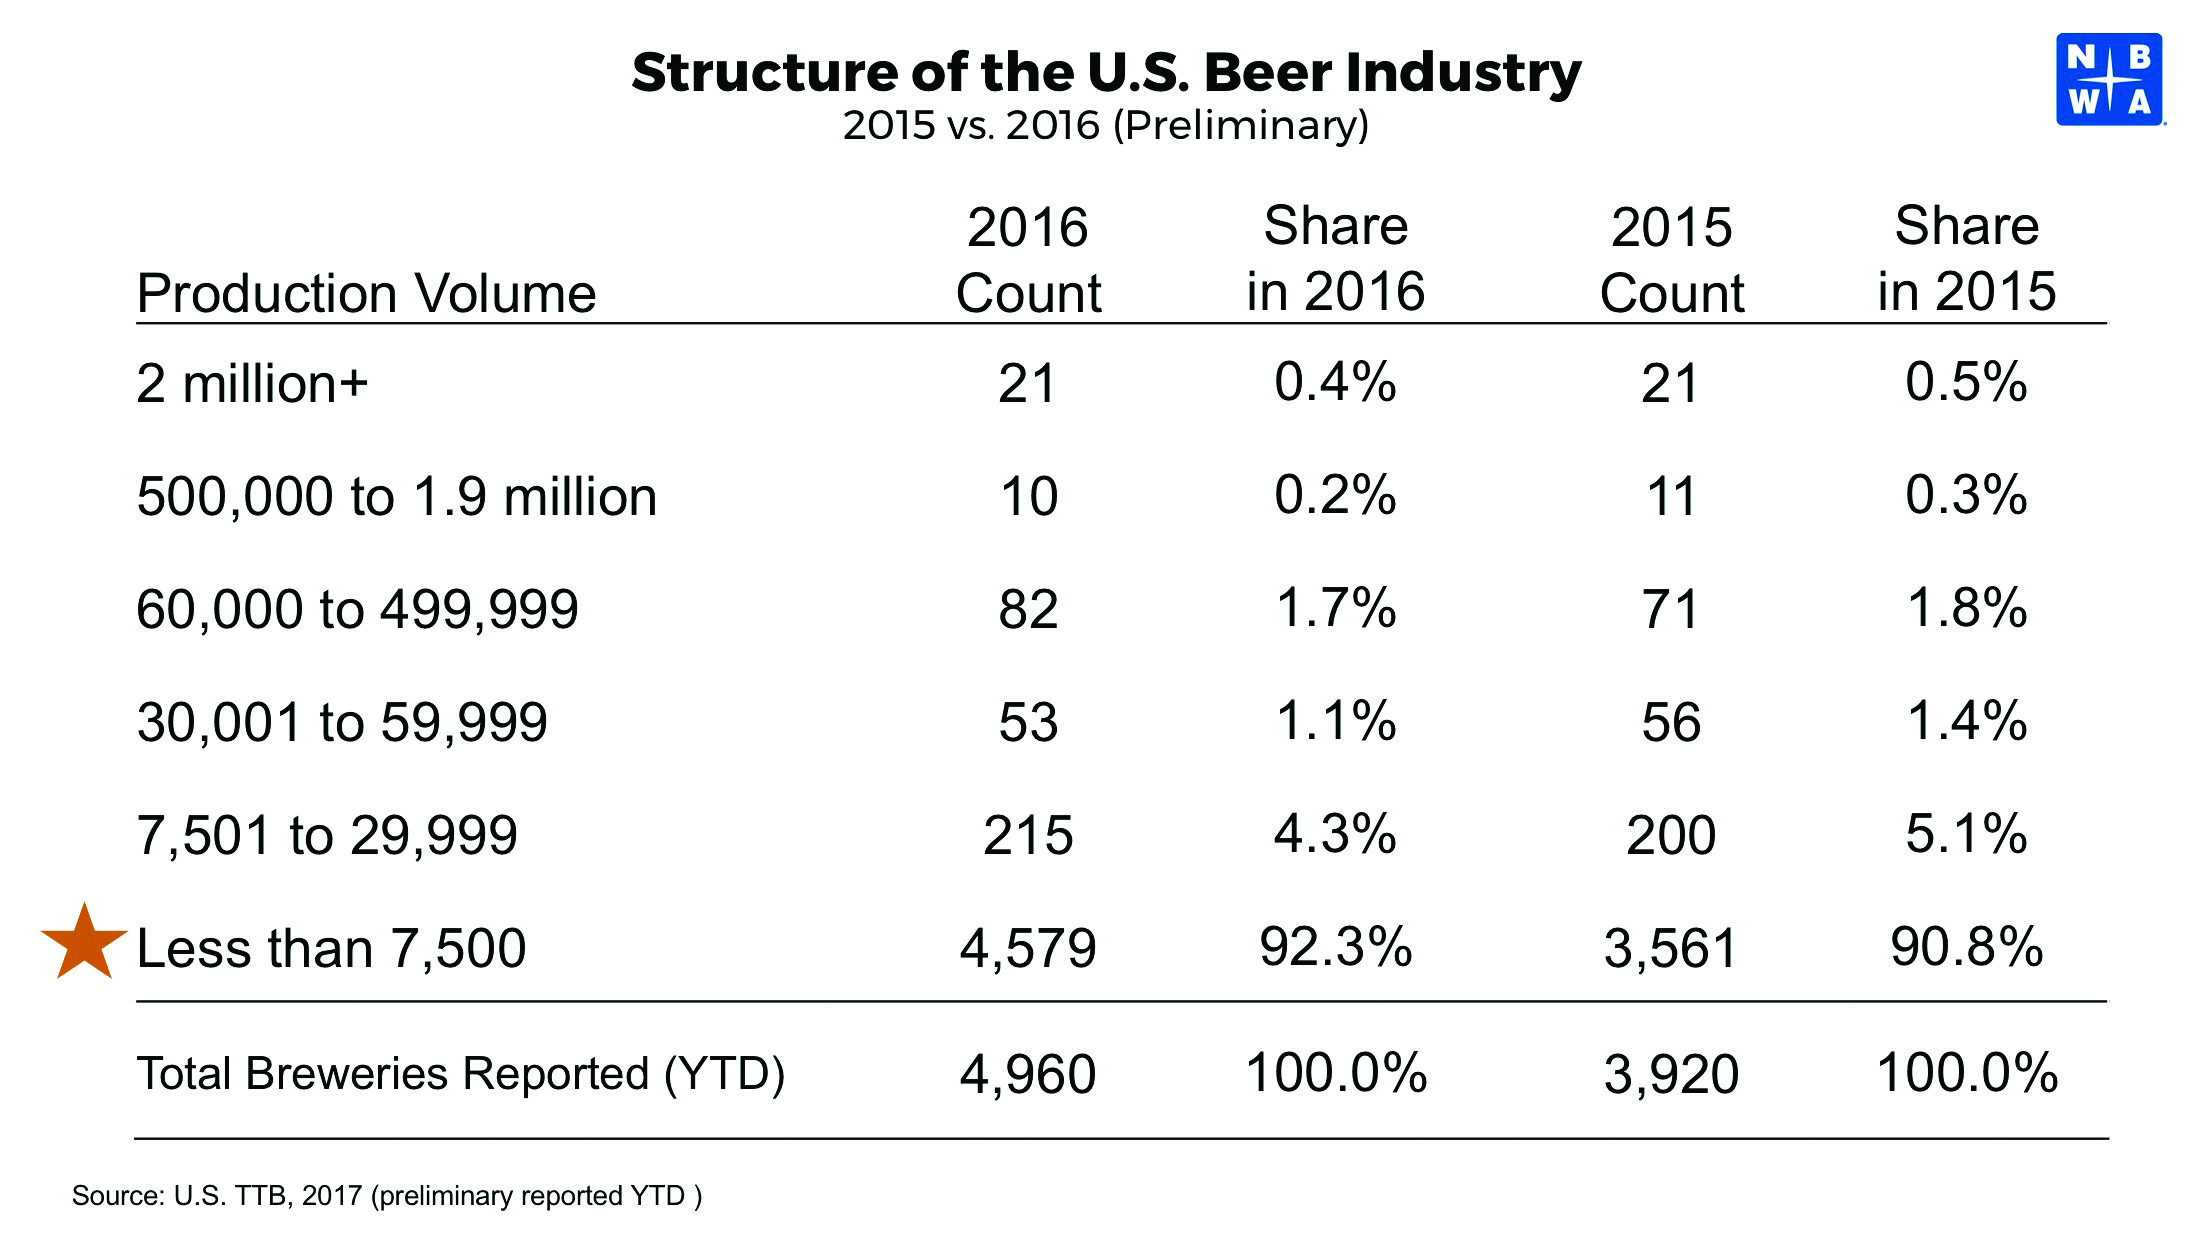 Structure of the U.S. Beer Industry 2015 vs. 2016